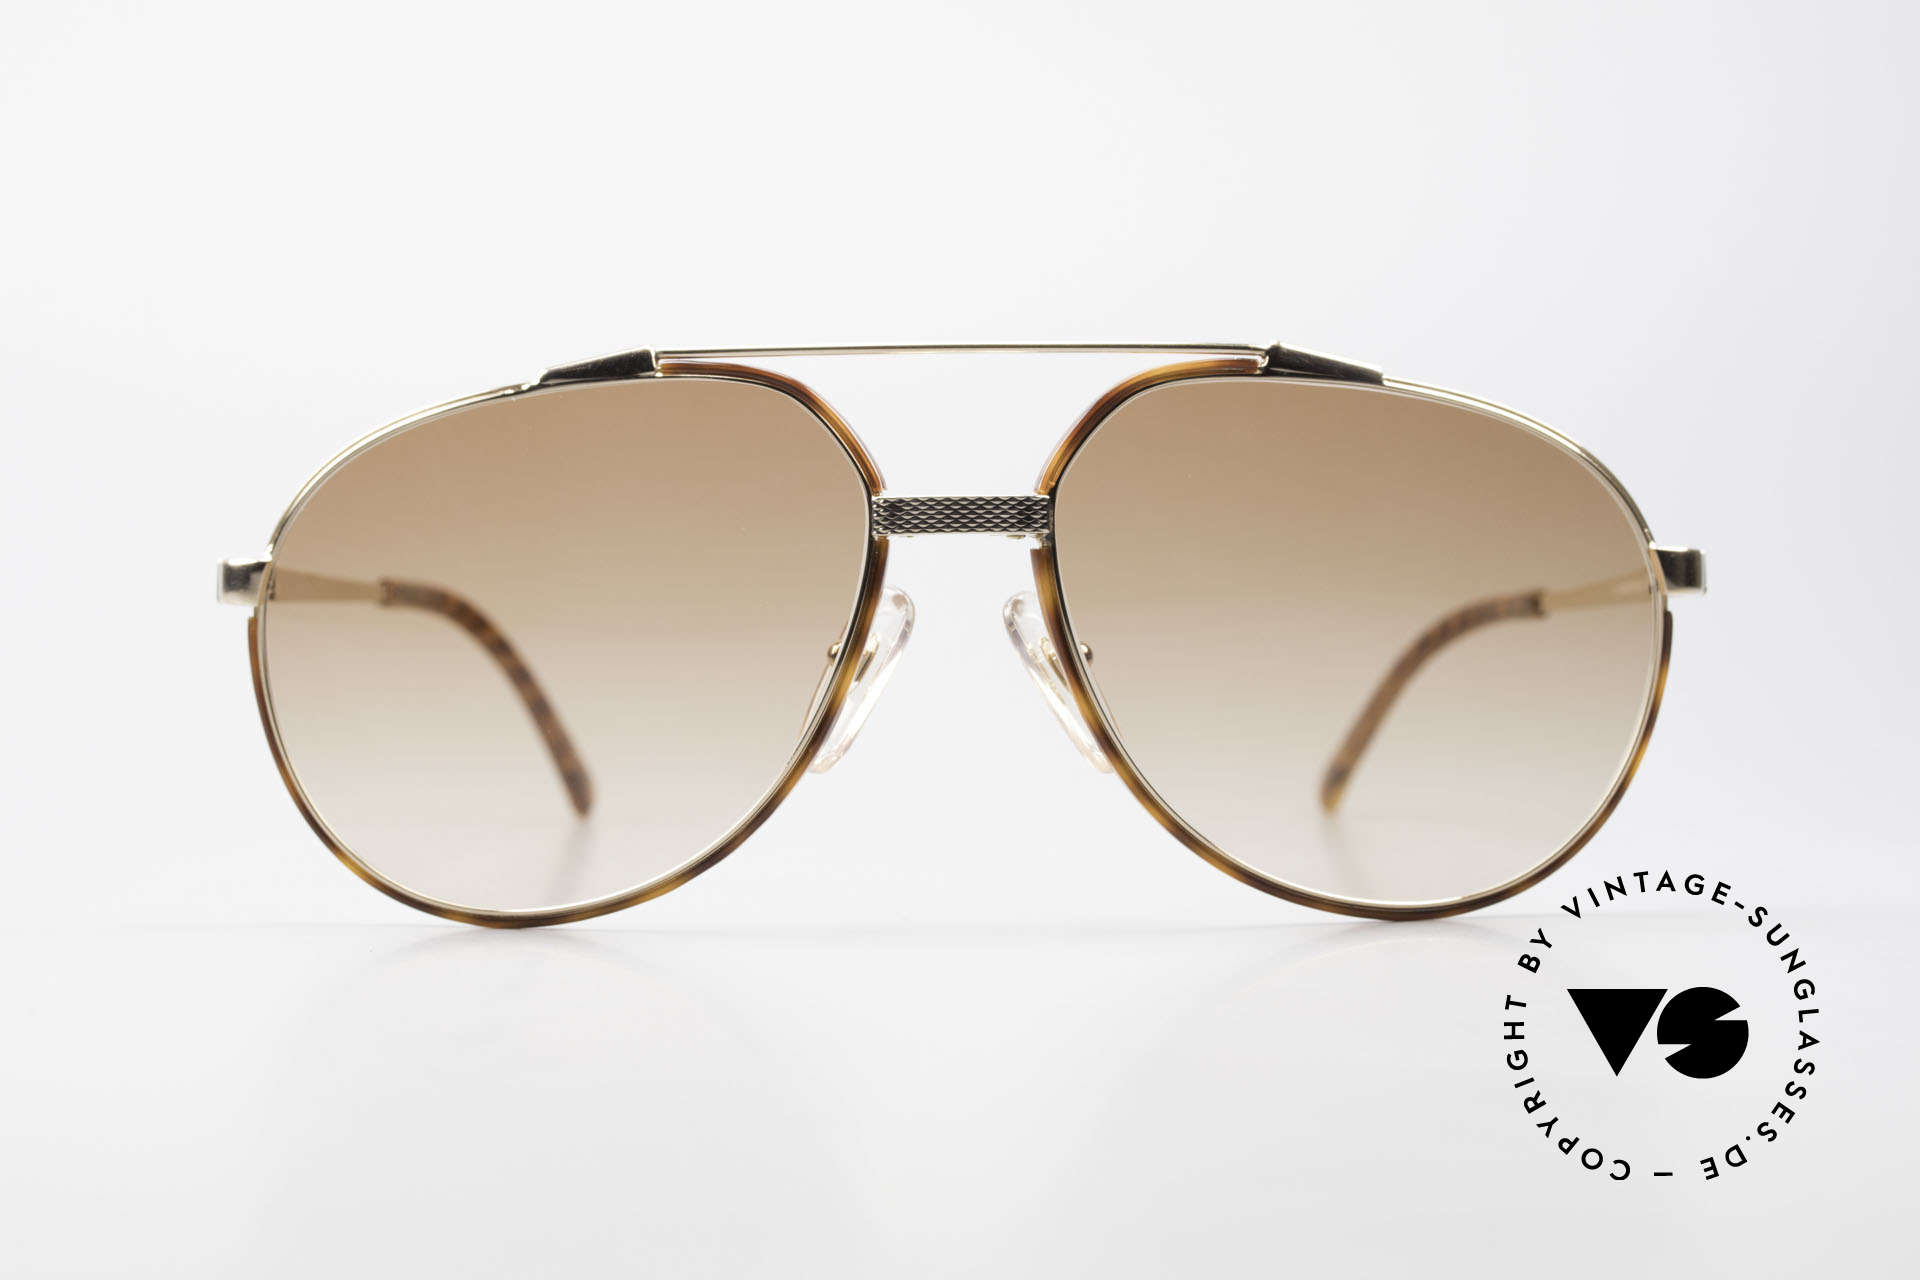 Dunhill 6174 Comfort Fit Luxury Sunglasses, stylish A. Dunhill vintage sunglasses from 1991, Made for Men